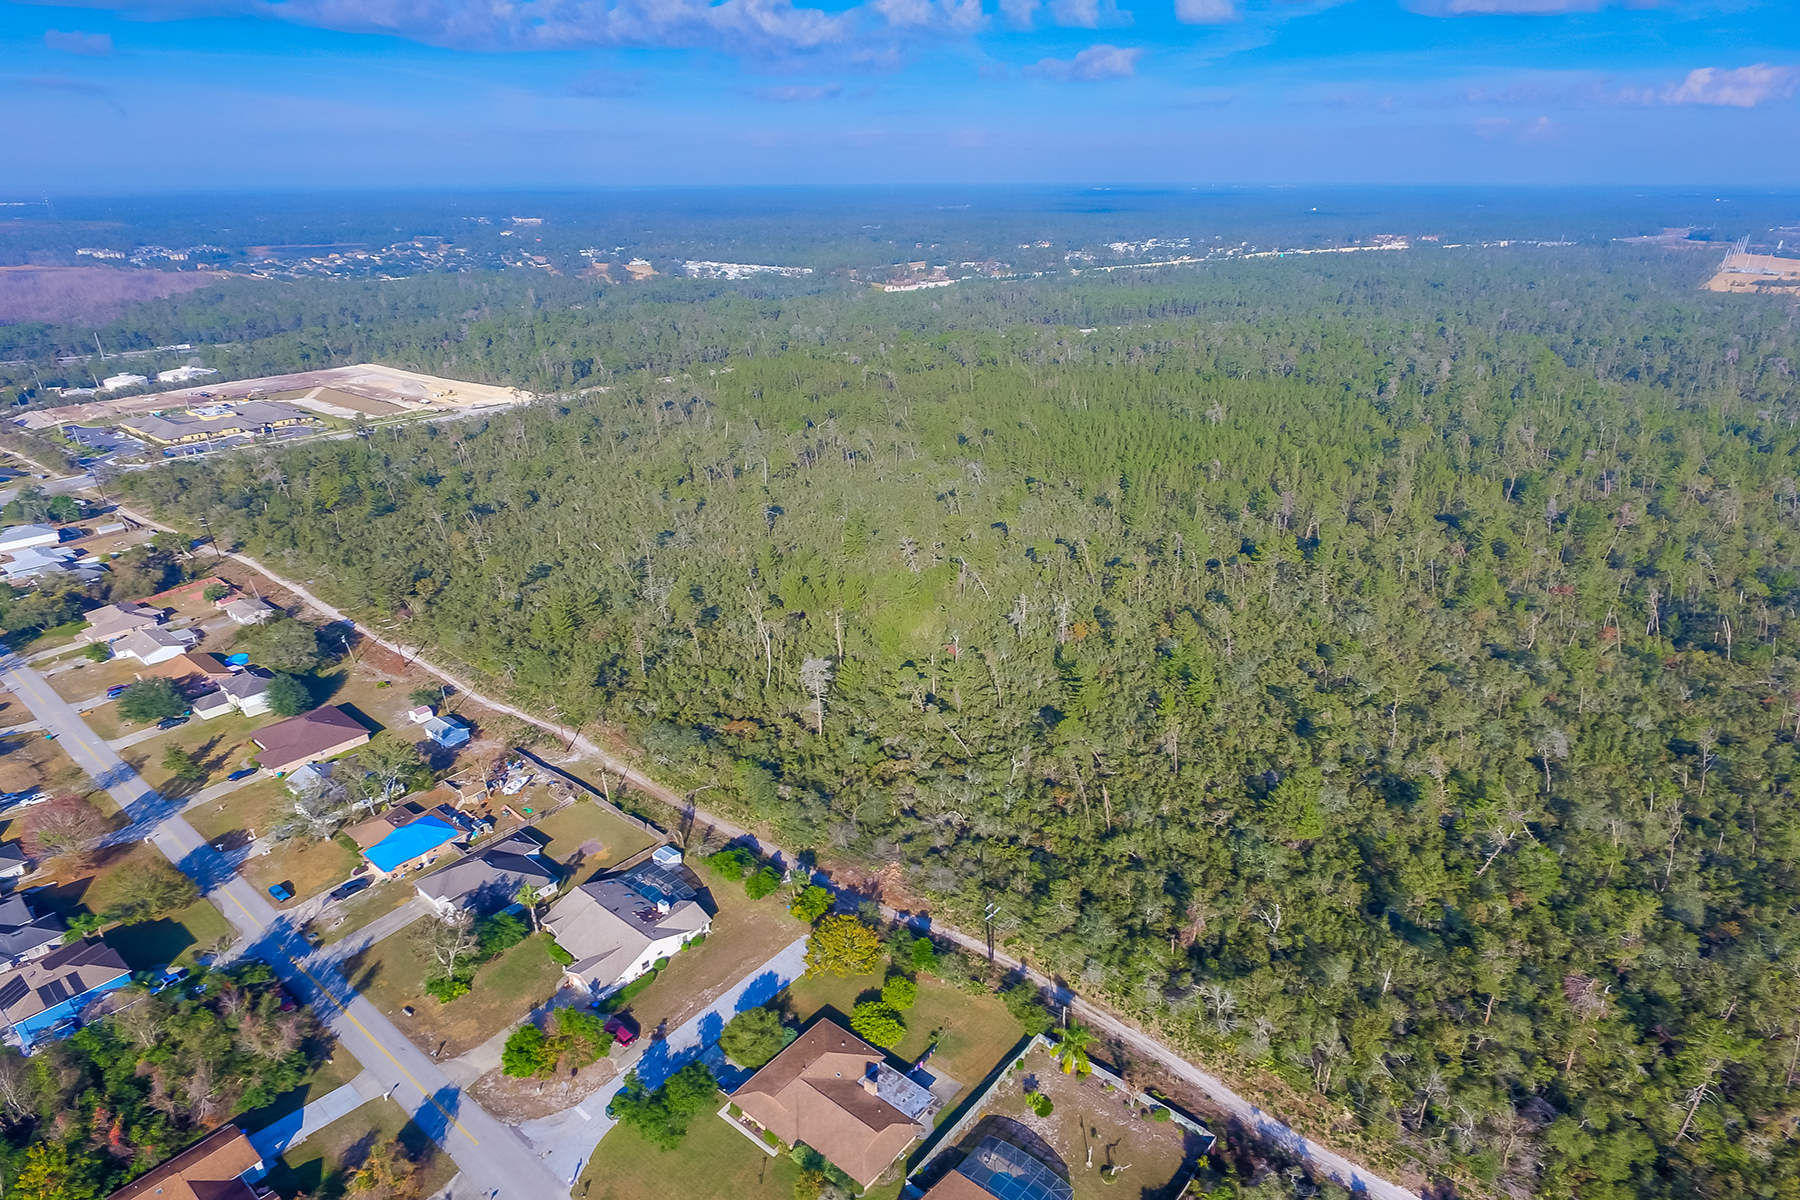 Land for Sale at NORTH ORLANDO- DELTONA E Normandy Blvd x, Deltona, Florida, 32725 United States